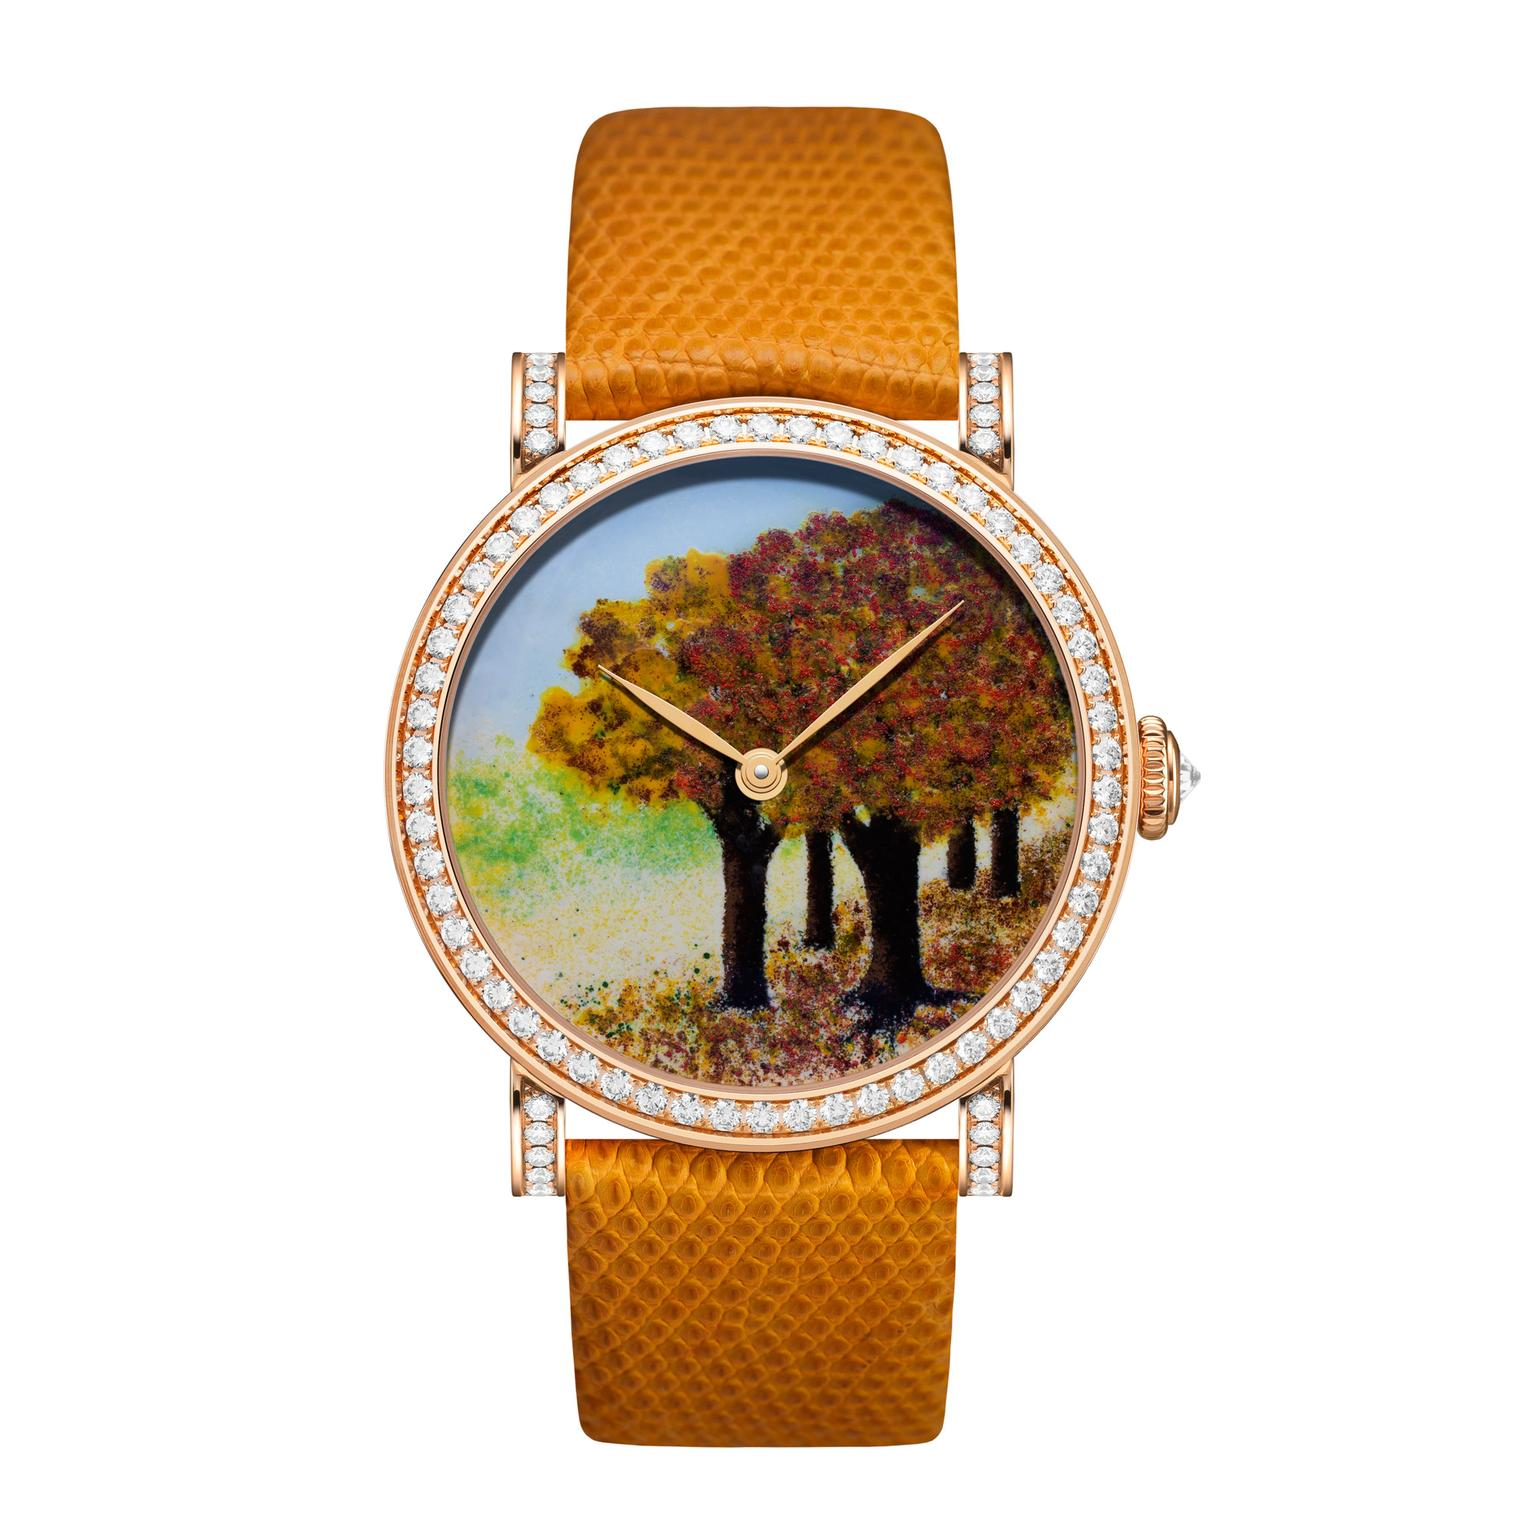 DeLaneau Autumn watch